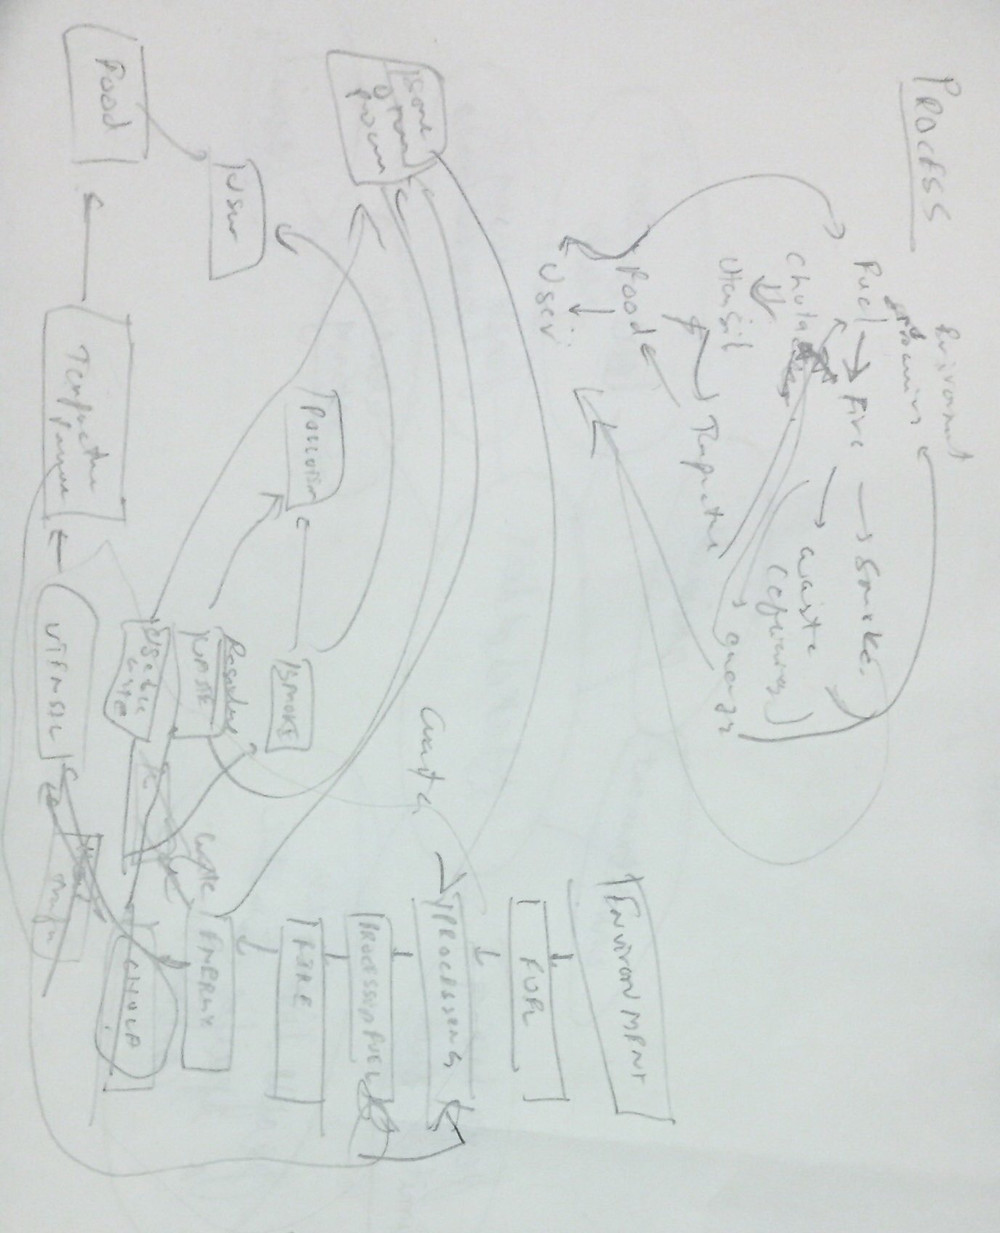 Rough analysis and flowchart of the process